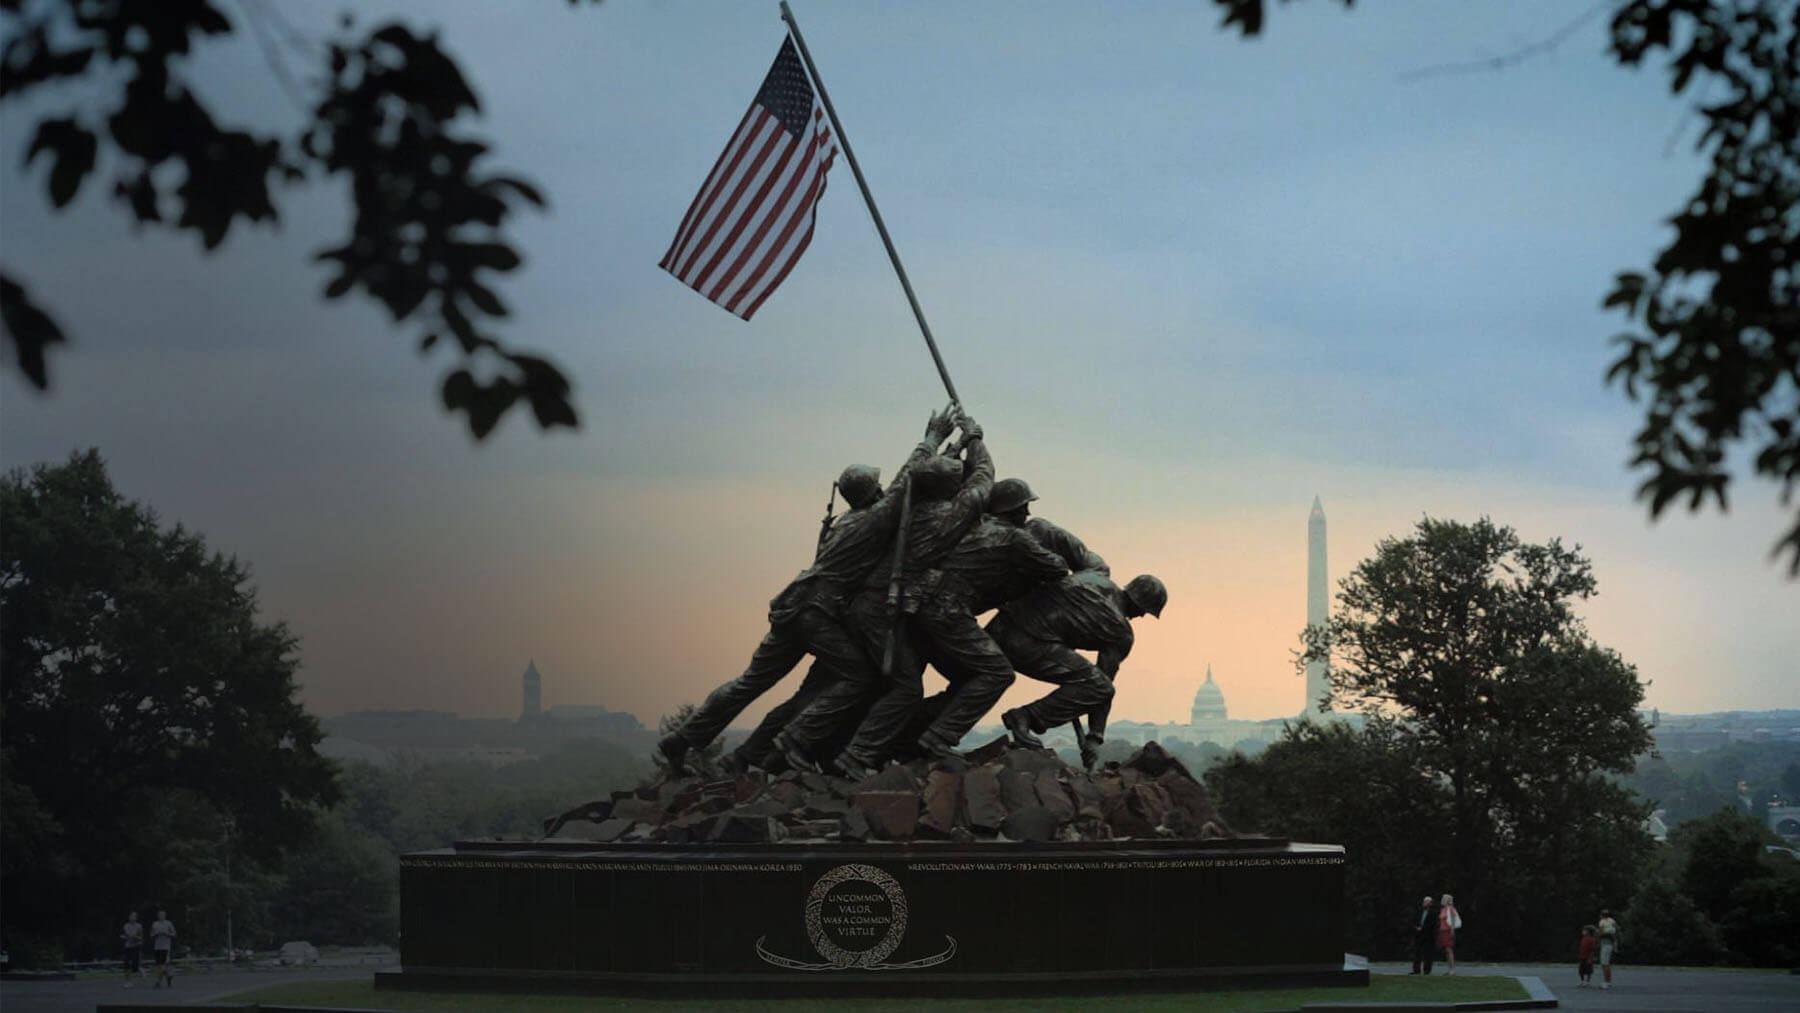 The Iwo Jima Memorial at the U.S. Marine War Memorial in Washington, D.C.